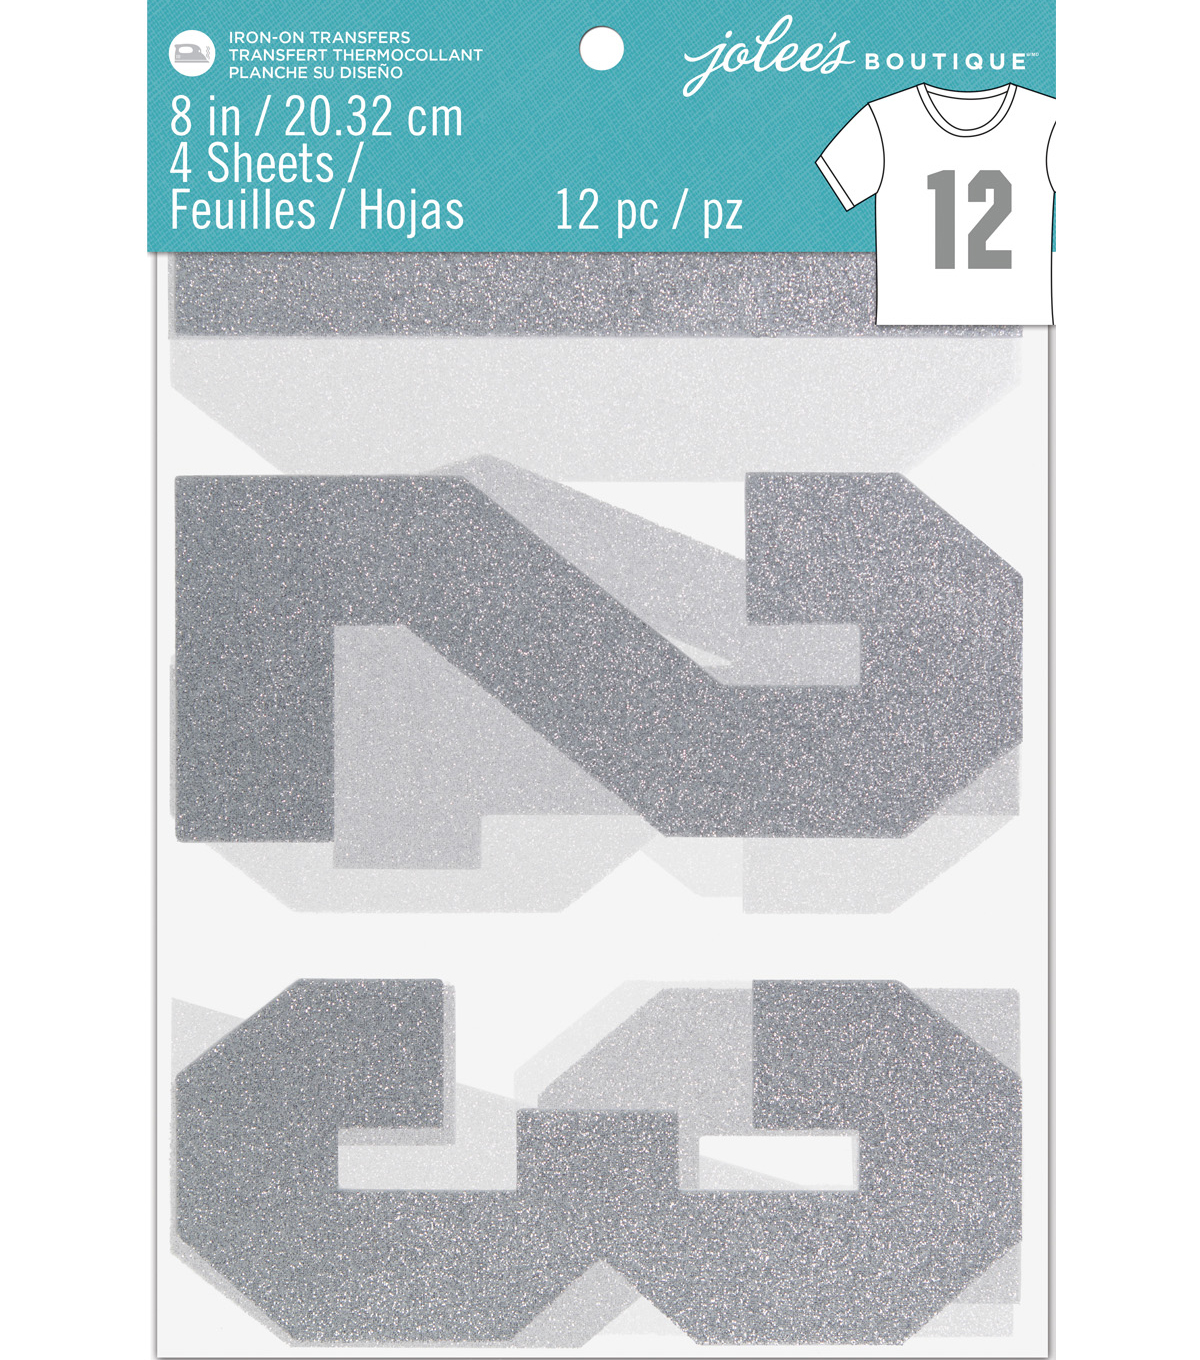 Jolee\u0027s Boutique 12 pk Glitter Number Iron-on Transfers-Silver